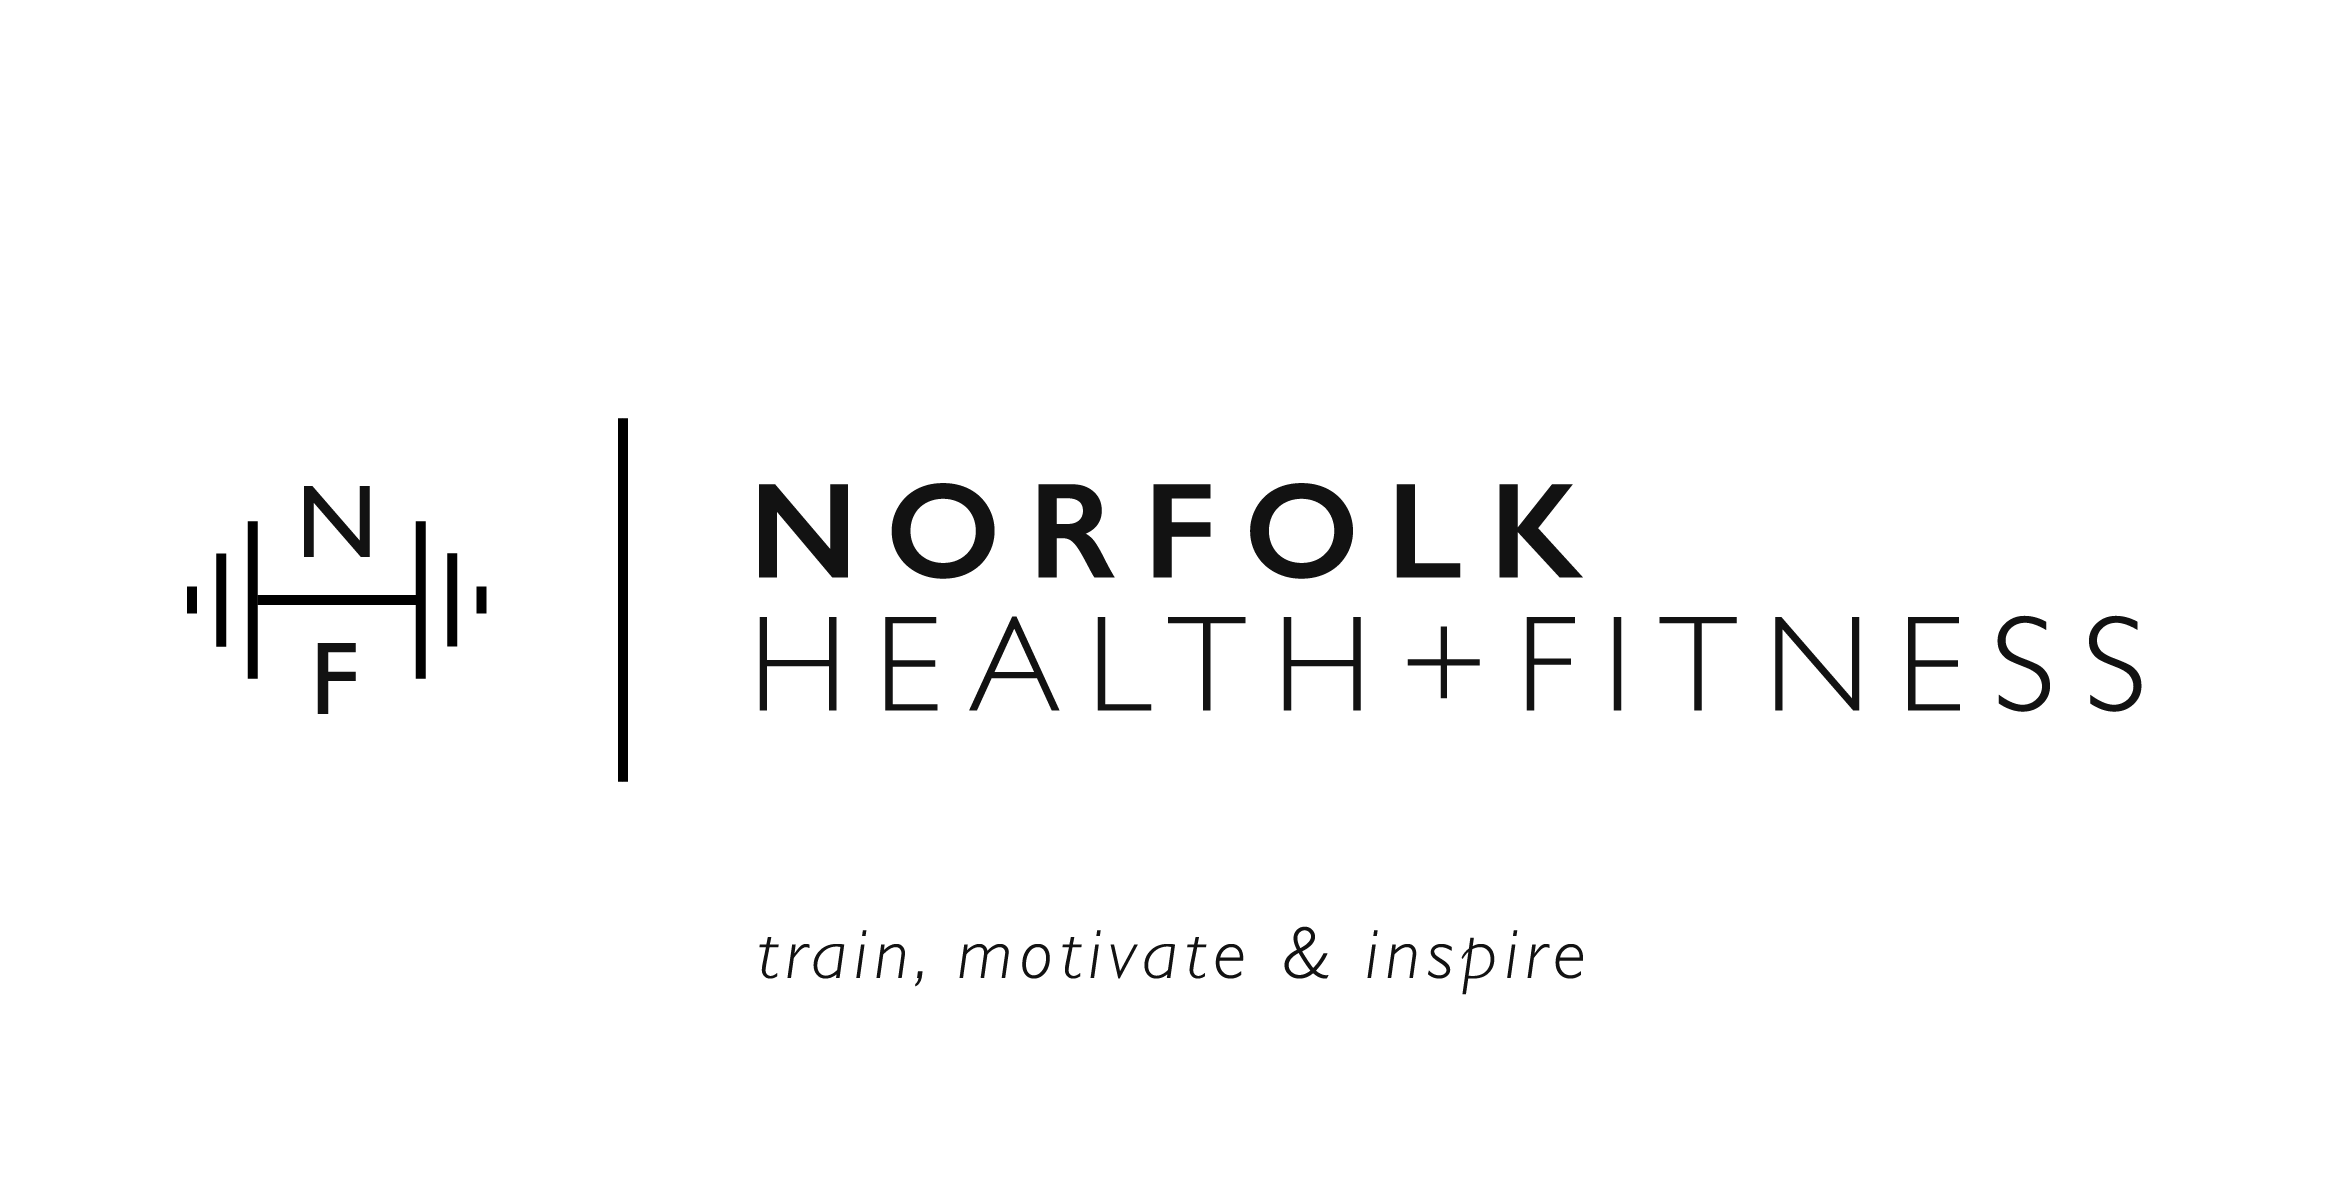 Norfolk Health & Fitness - train motivate and inspire